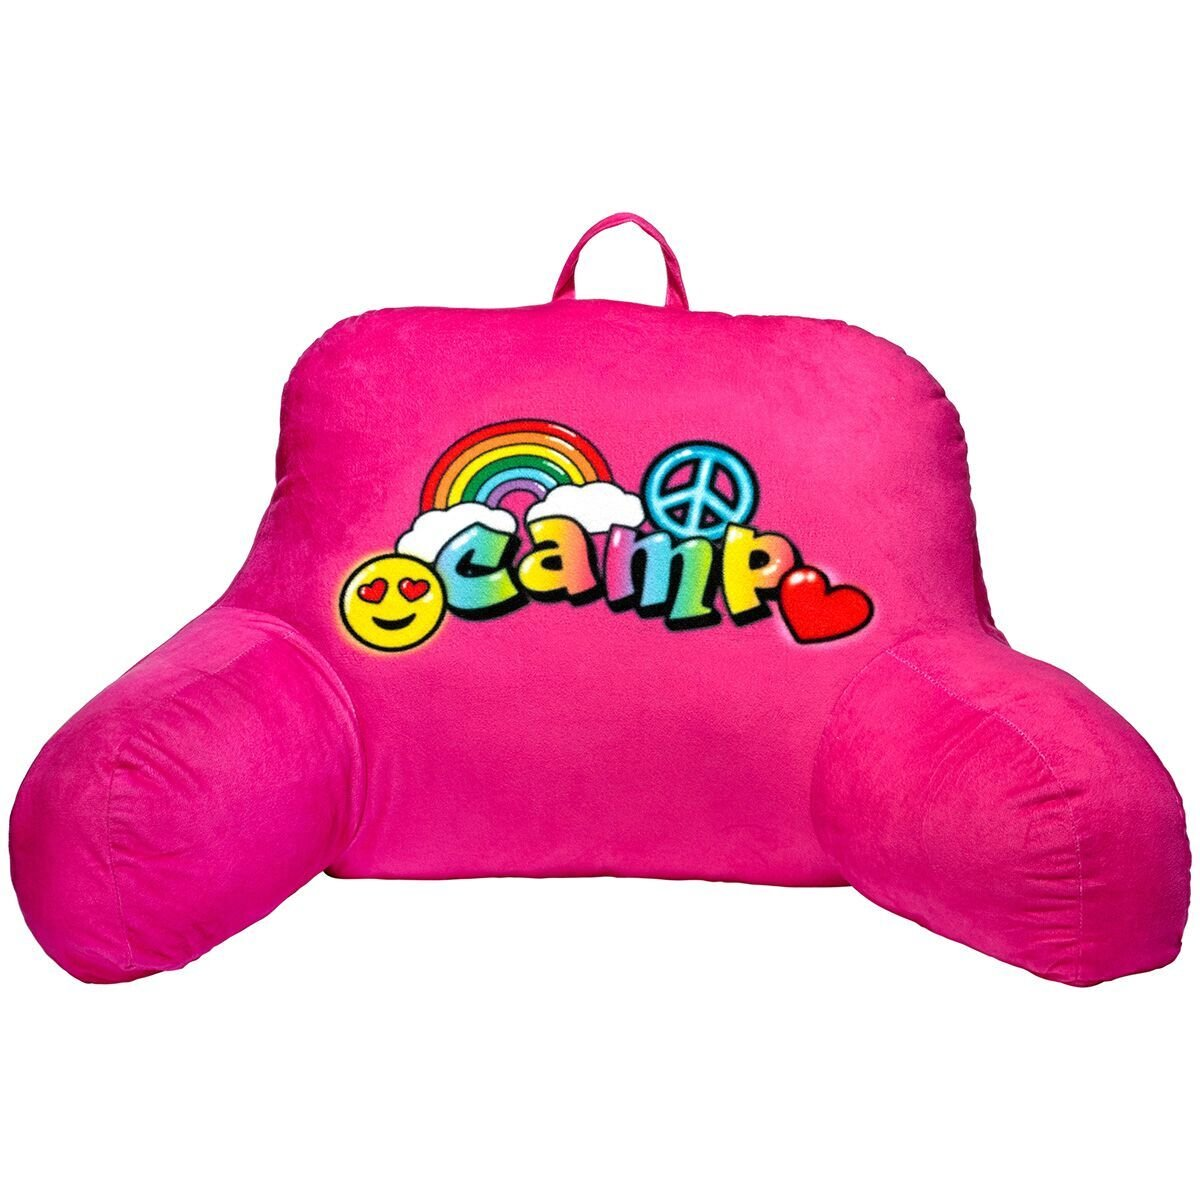 3C4G Airbrush Camp Bed Rest Pillow, Pink